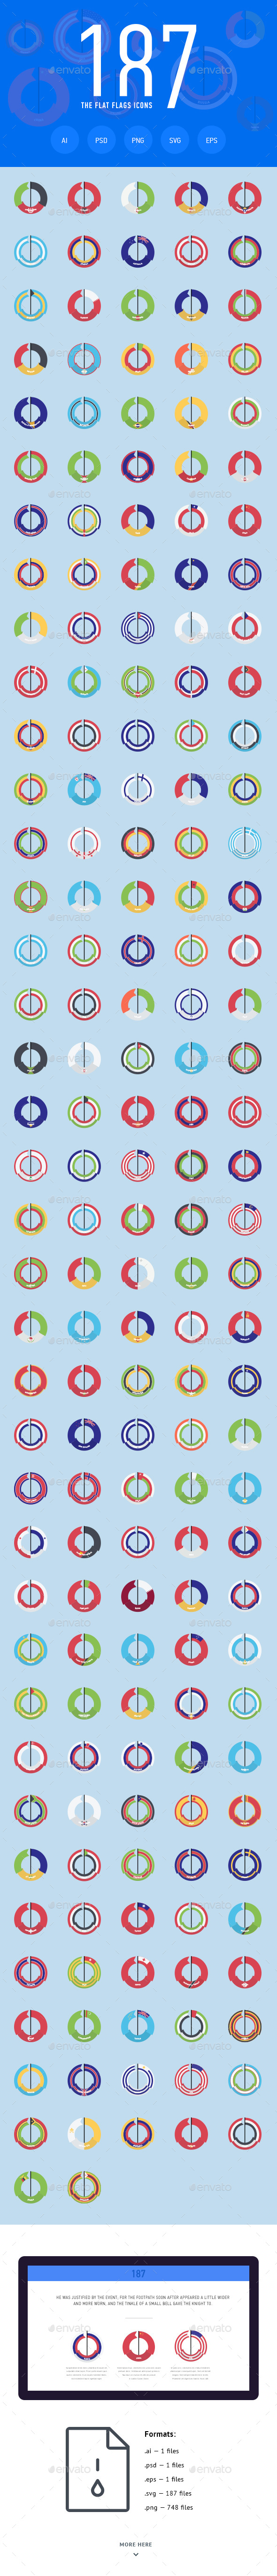 The Flat Flags Icons 187 - Web Icons